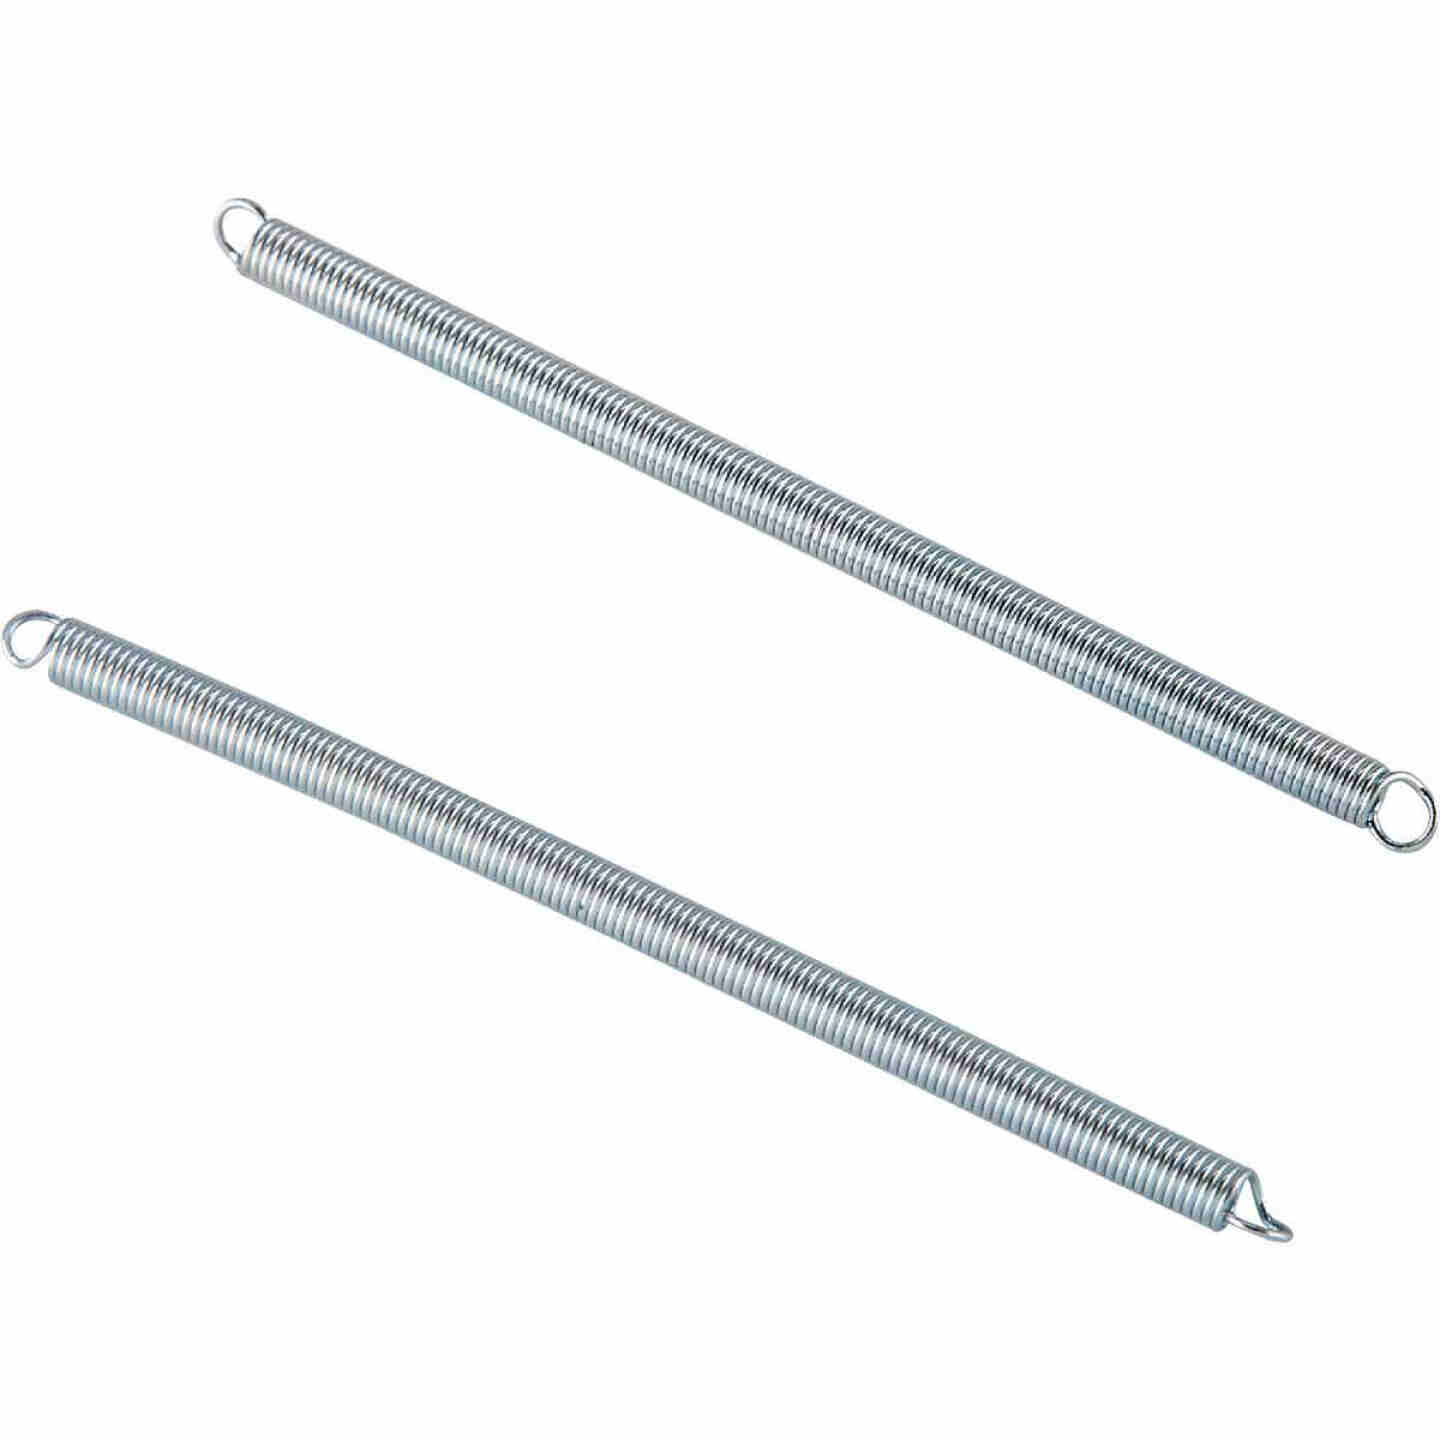 Century Spring 5 In. x 1/2 In. Extension Spring (2 Count) Image 1